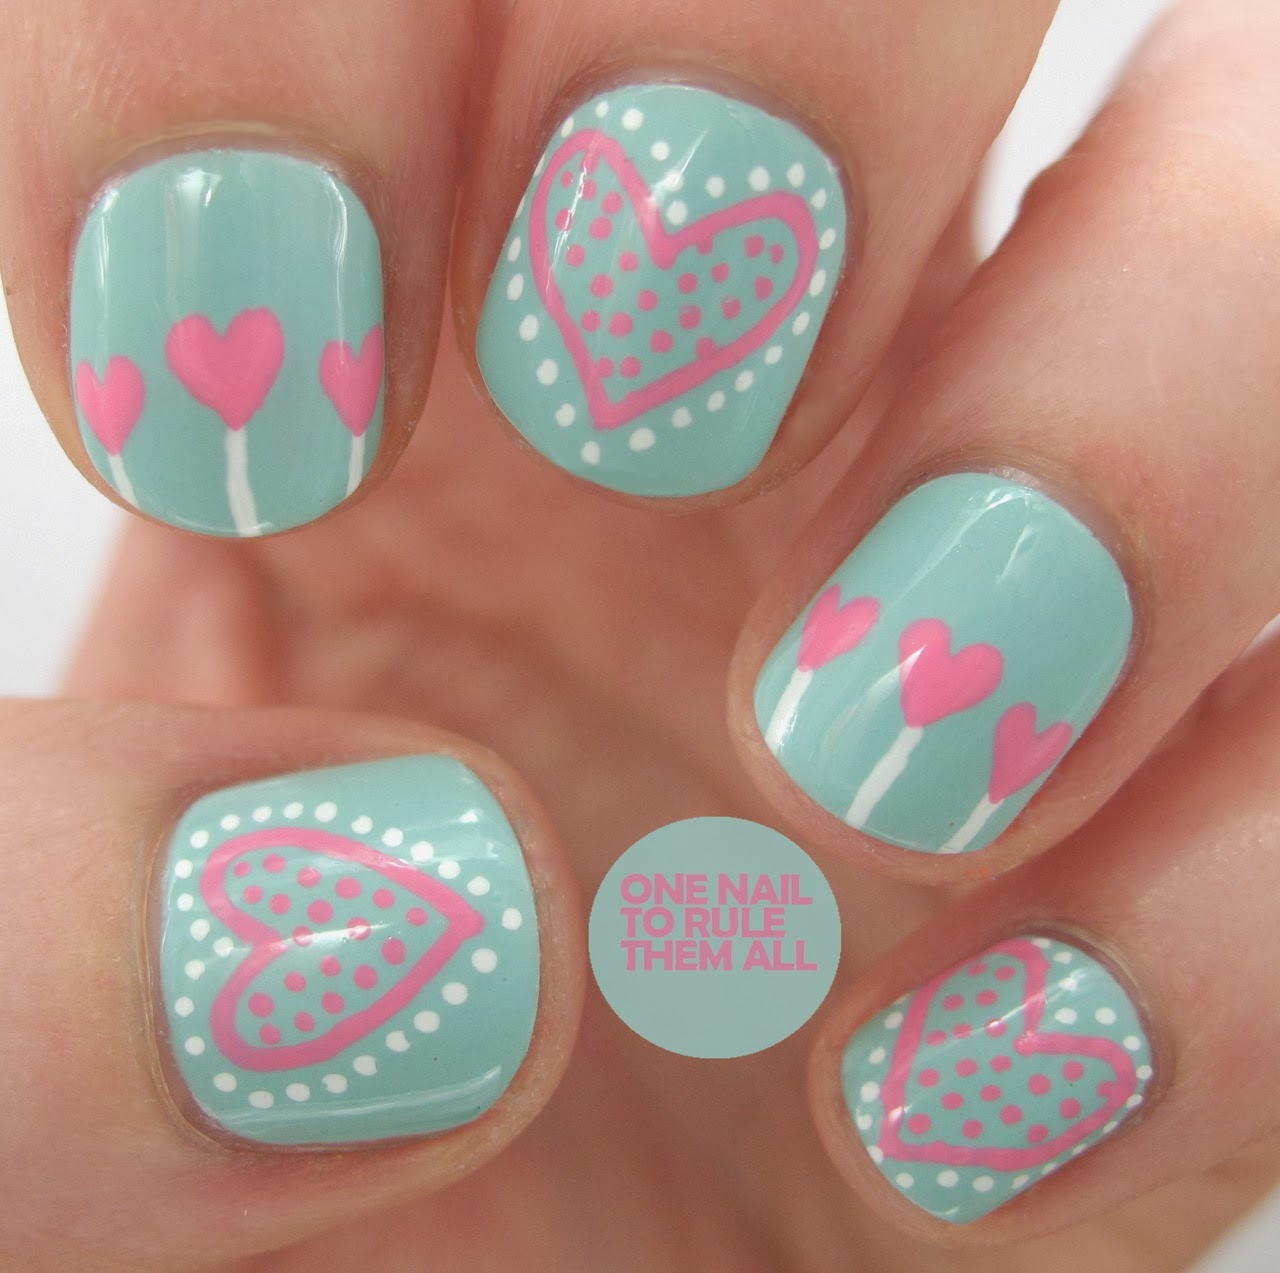 Pics Of Nail Art: Cute Nail Art Ideas